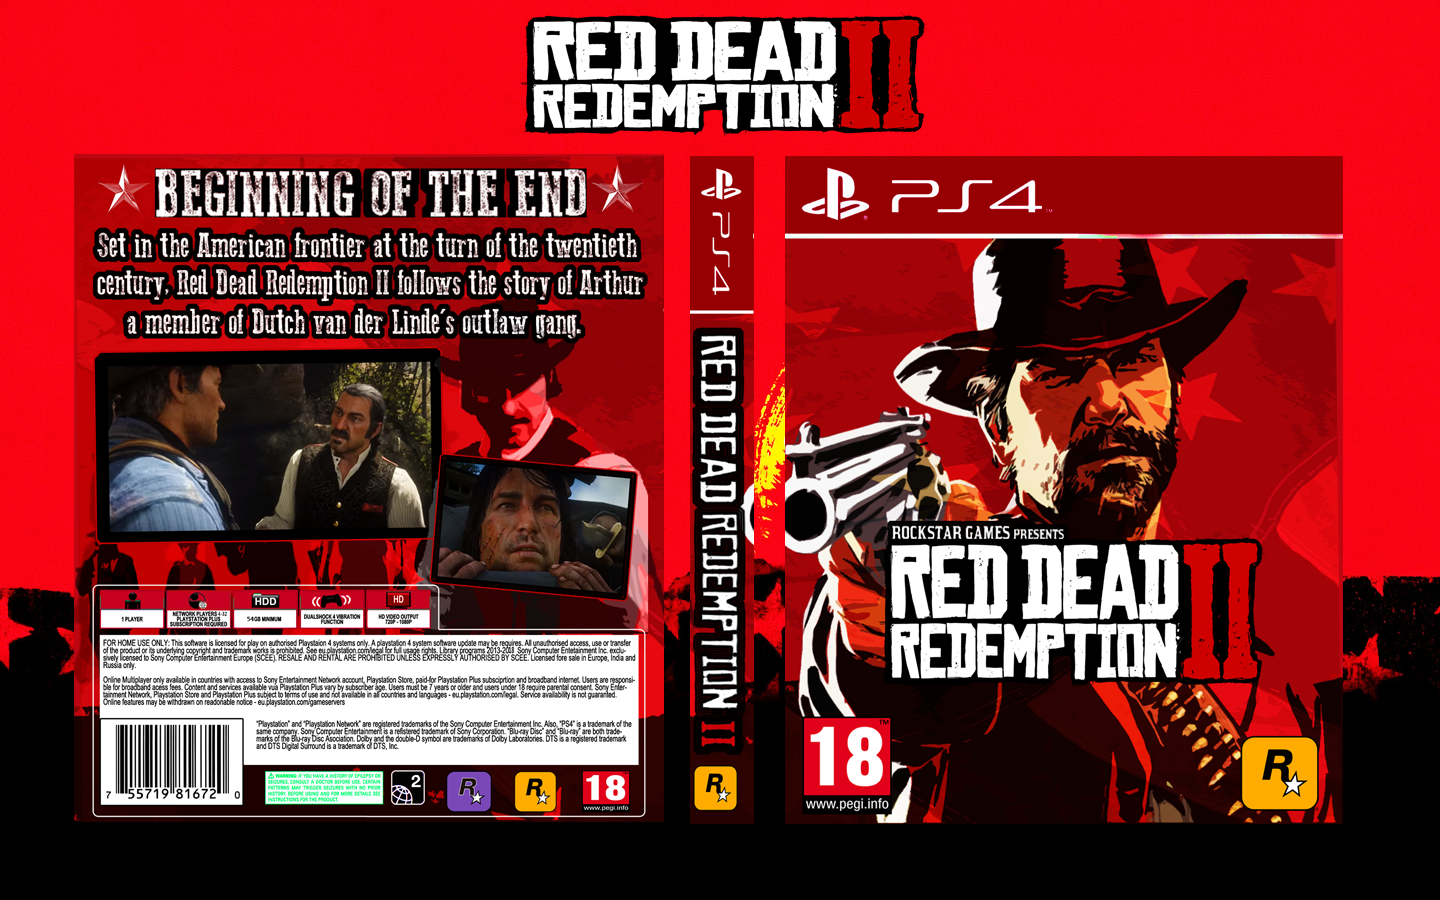 Red Dead Redemption 2 PlayStation 4 Box Art Cover by Maxhunter24